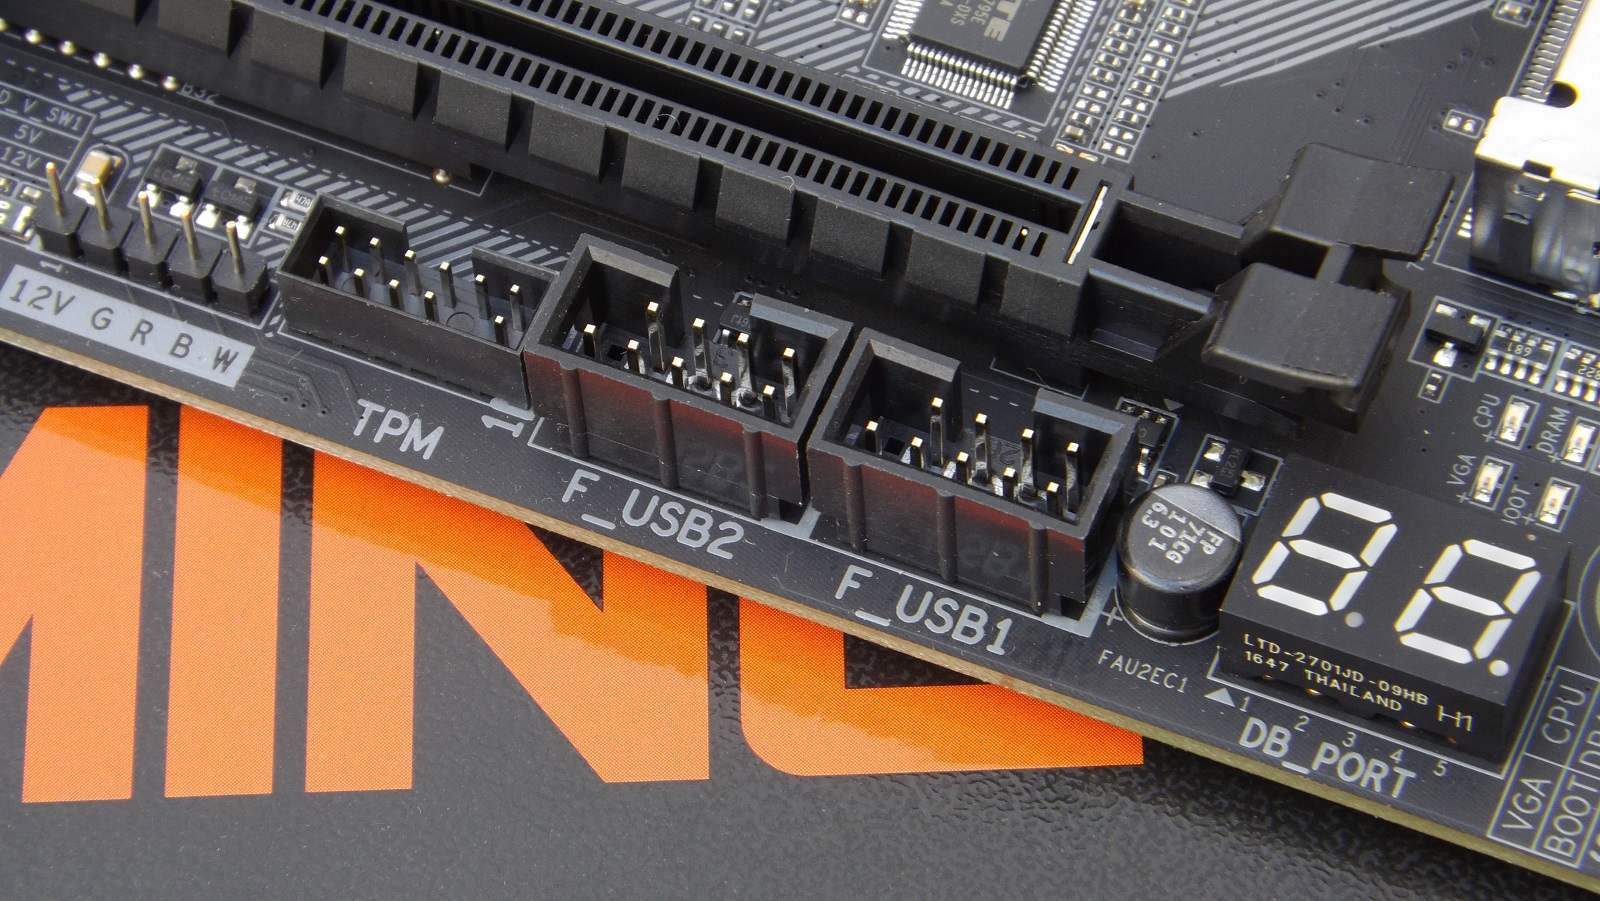 Gigabyte Aorus Z370 Gaming 5 Motherboard Review - Page 2 of 8